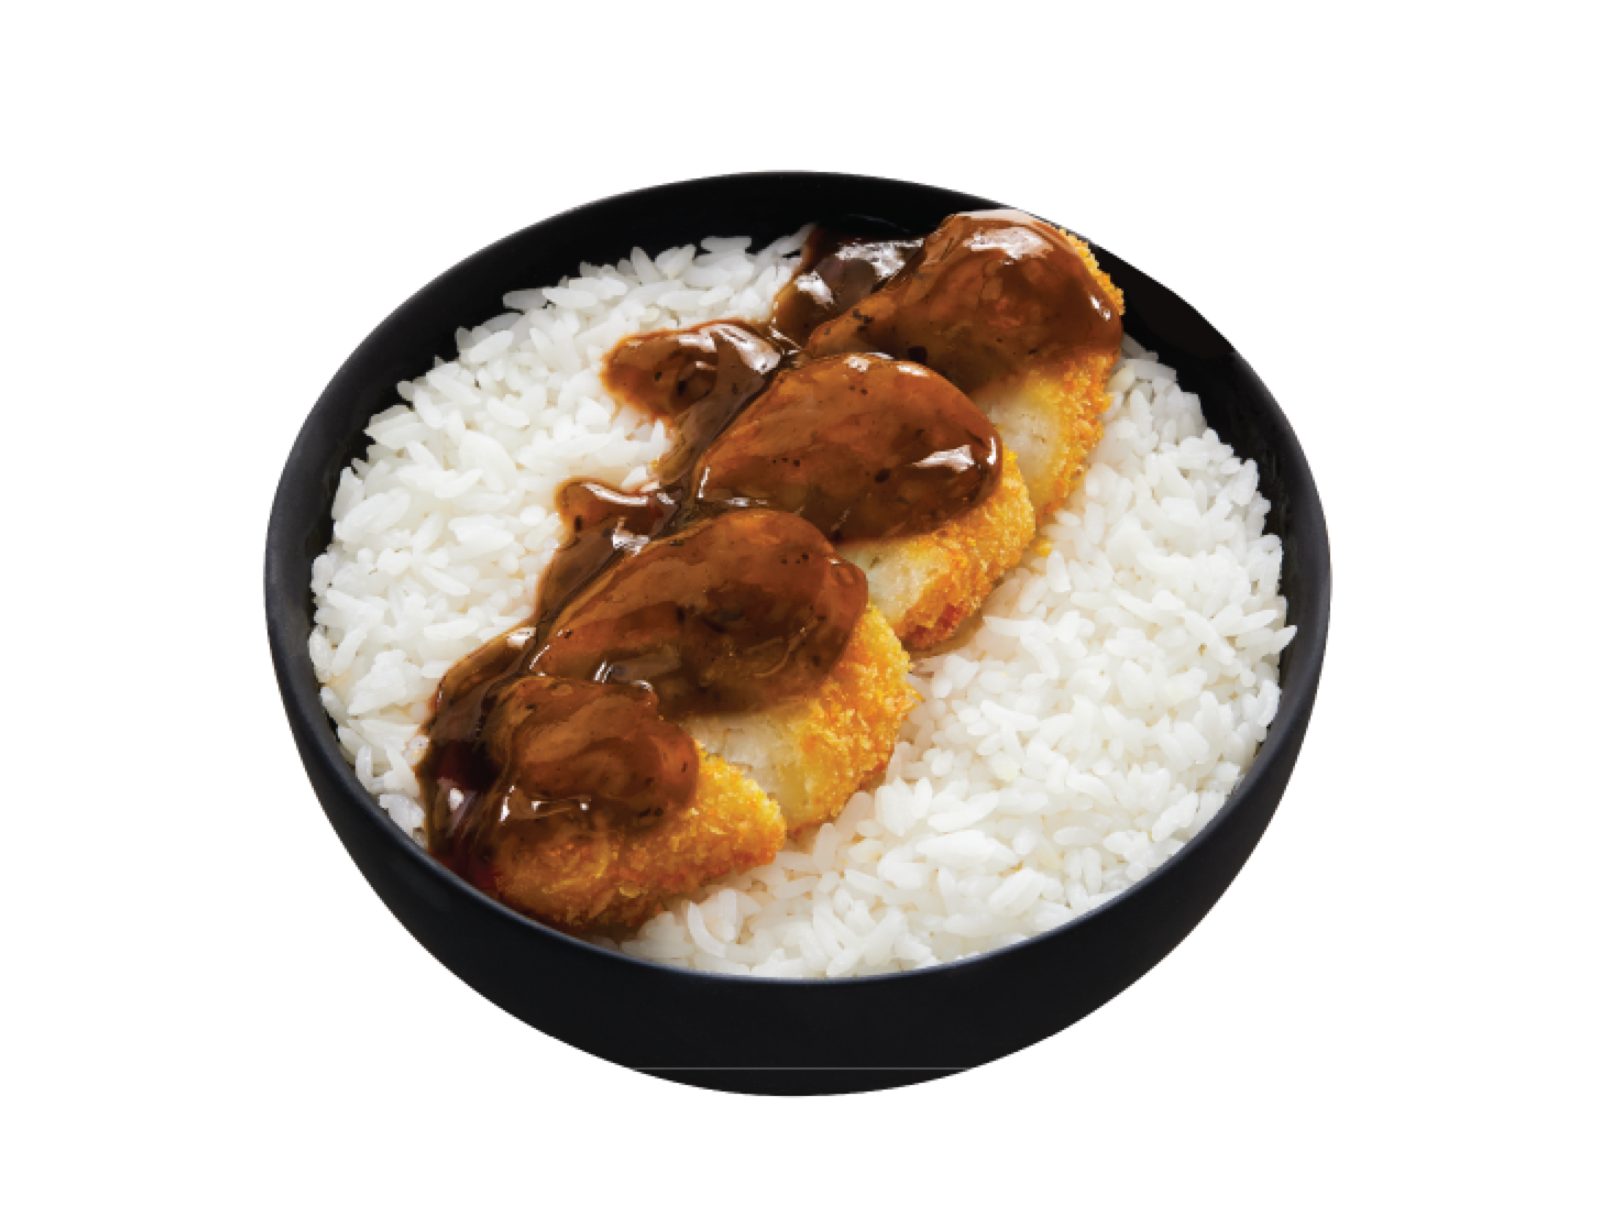 Fried fish cut into slices on top of white rice and covered in honey garlic sauce